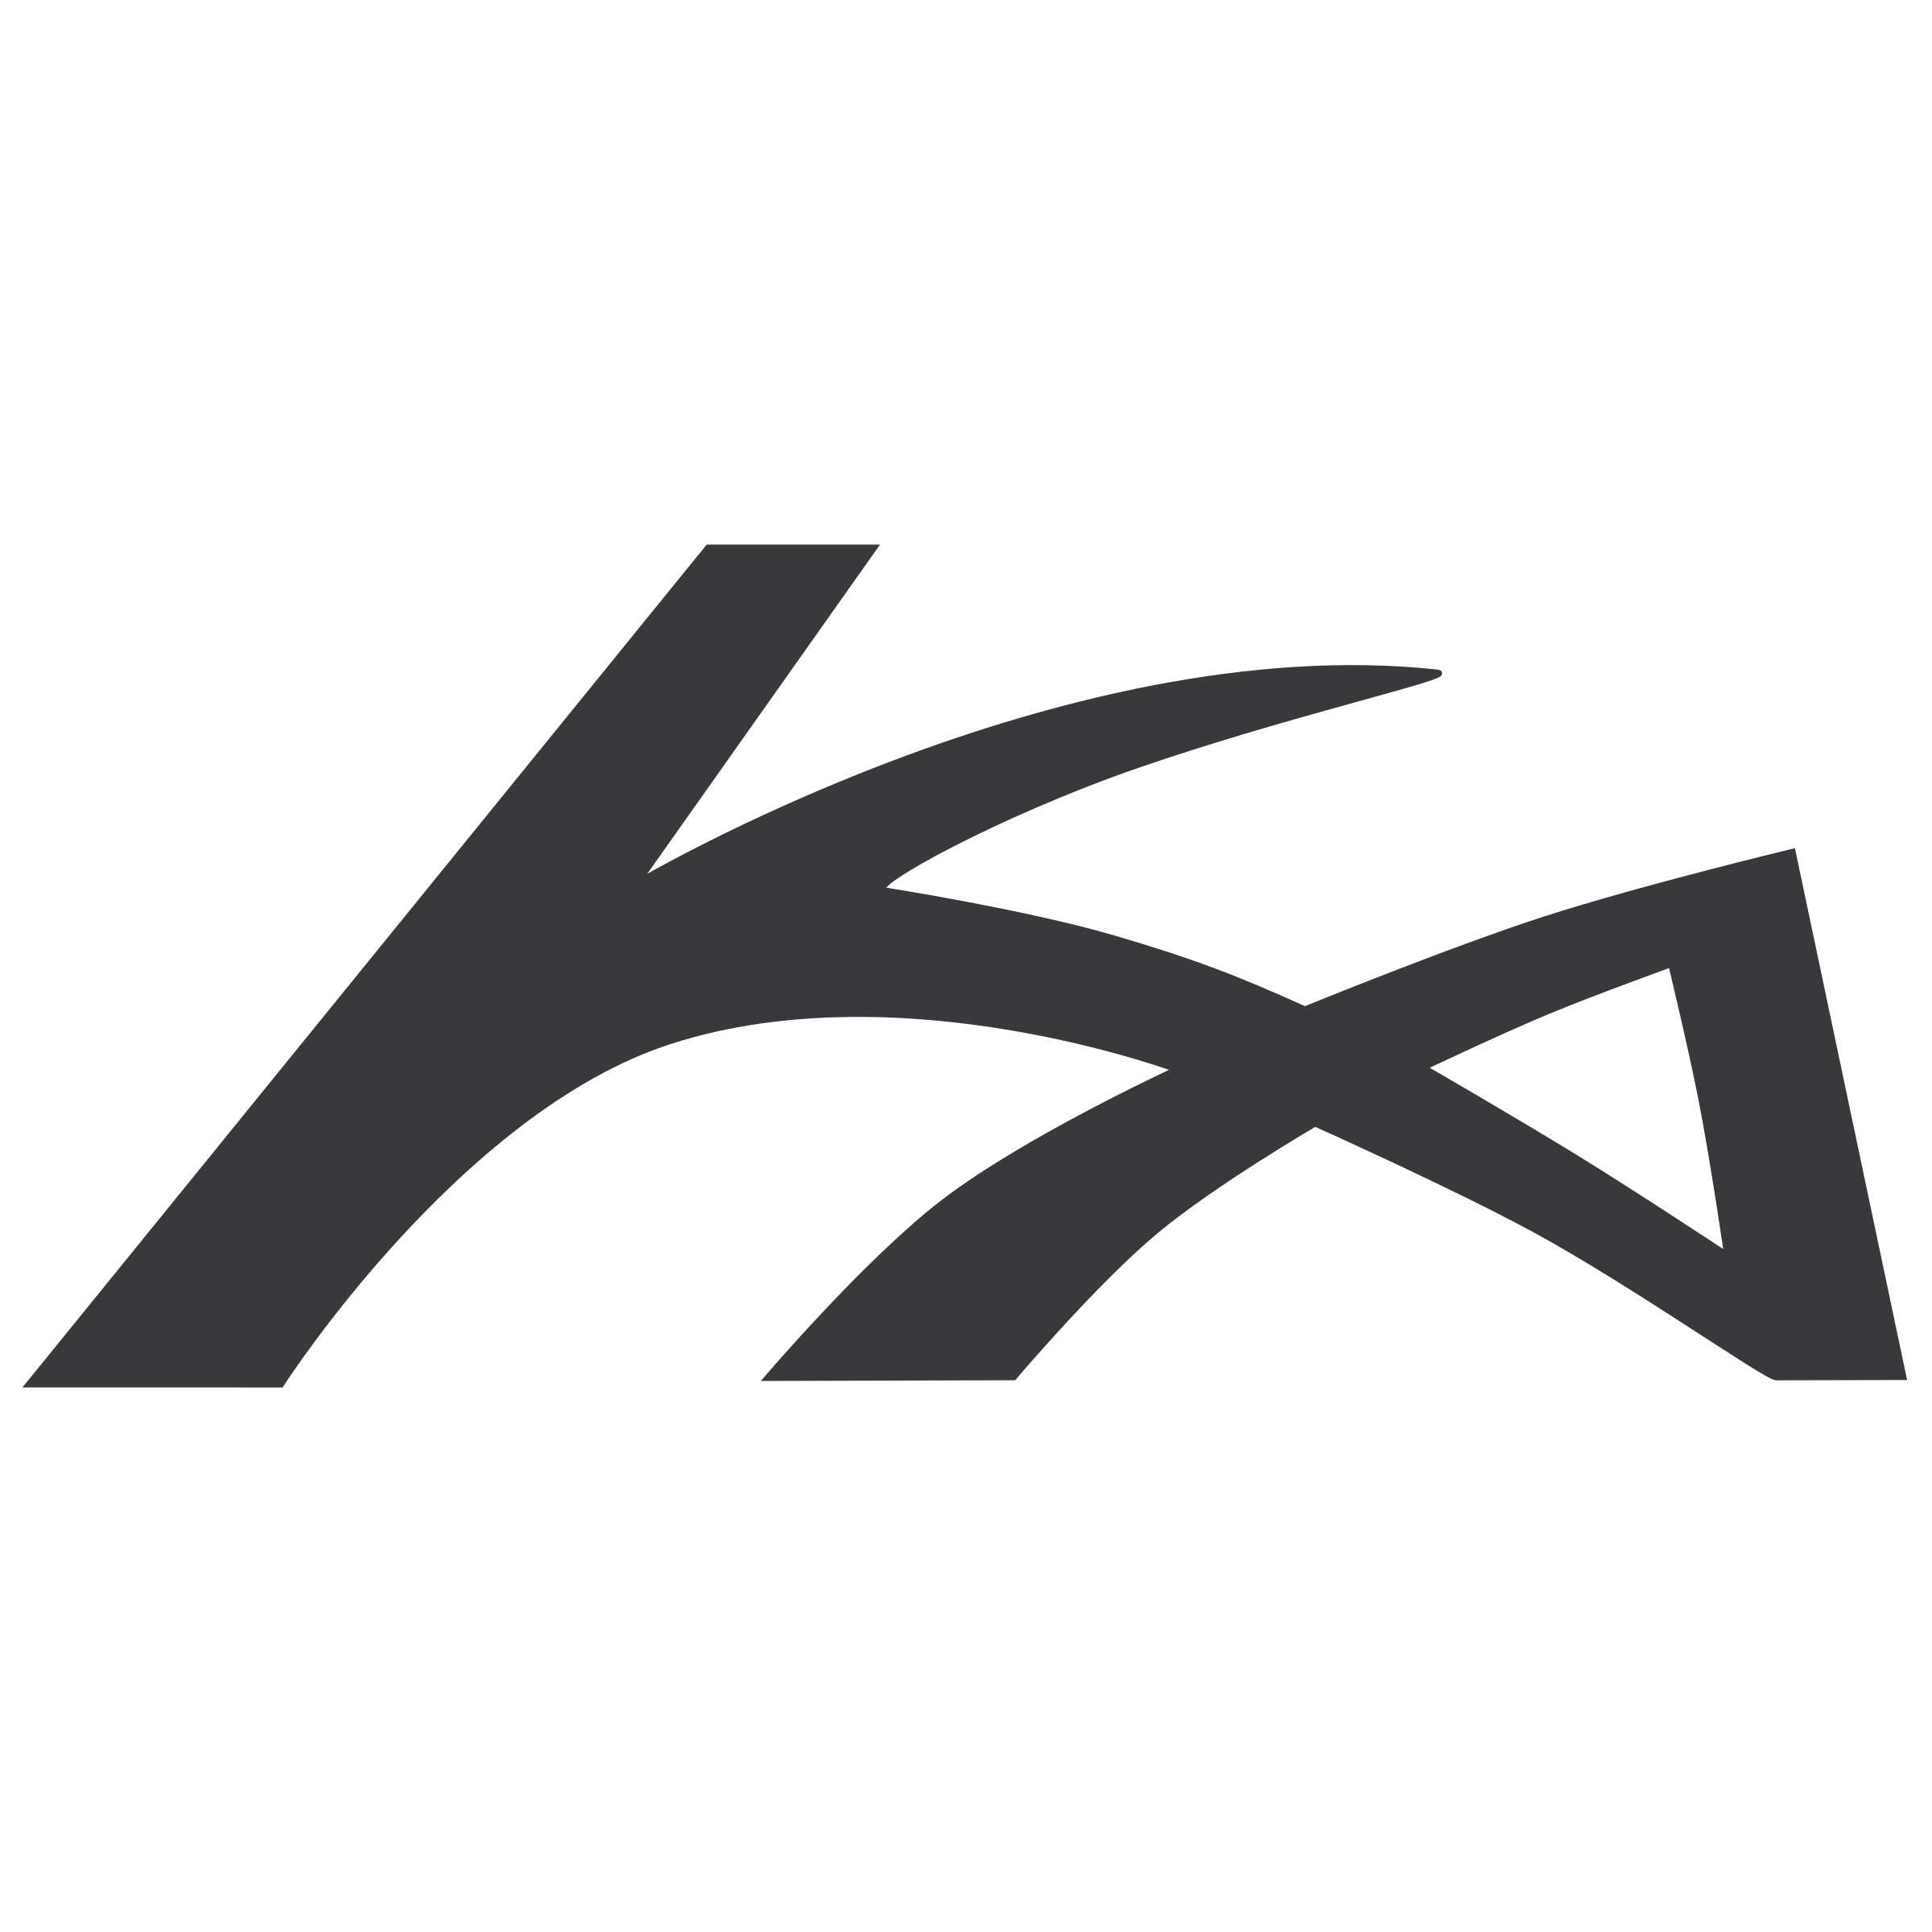 Ka Logo PNG Transparent & SVG Vector.